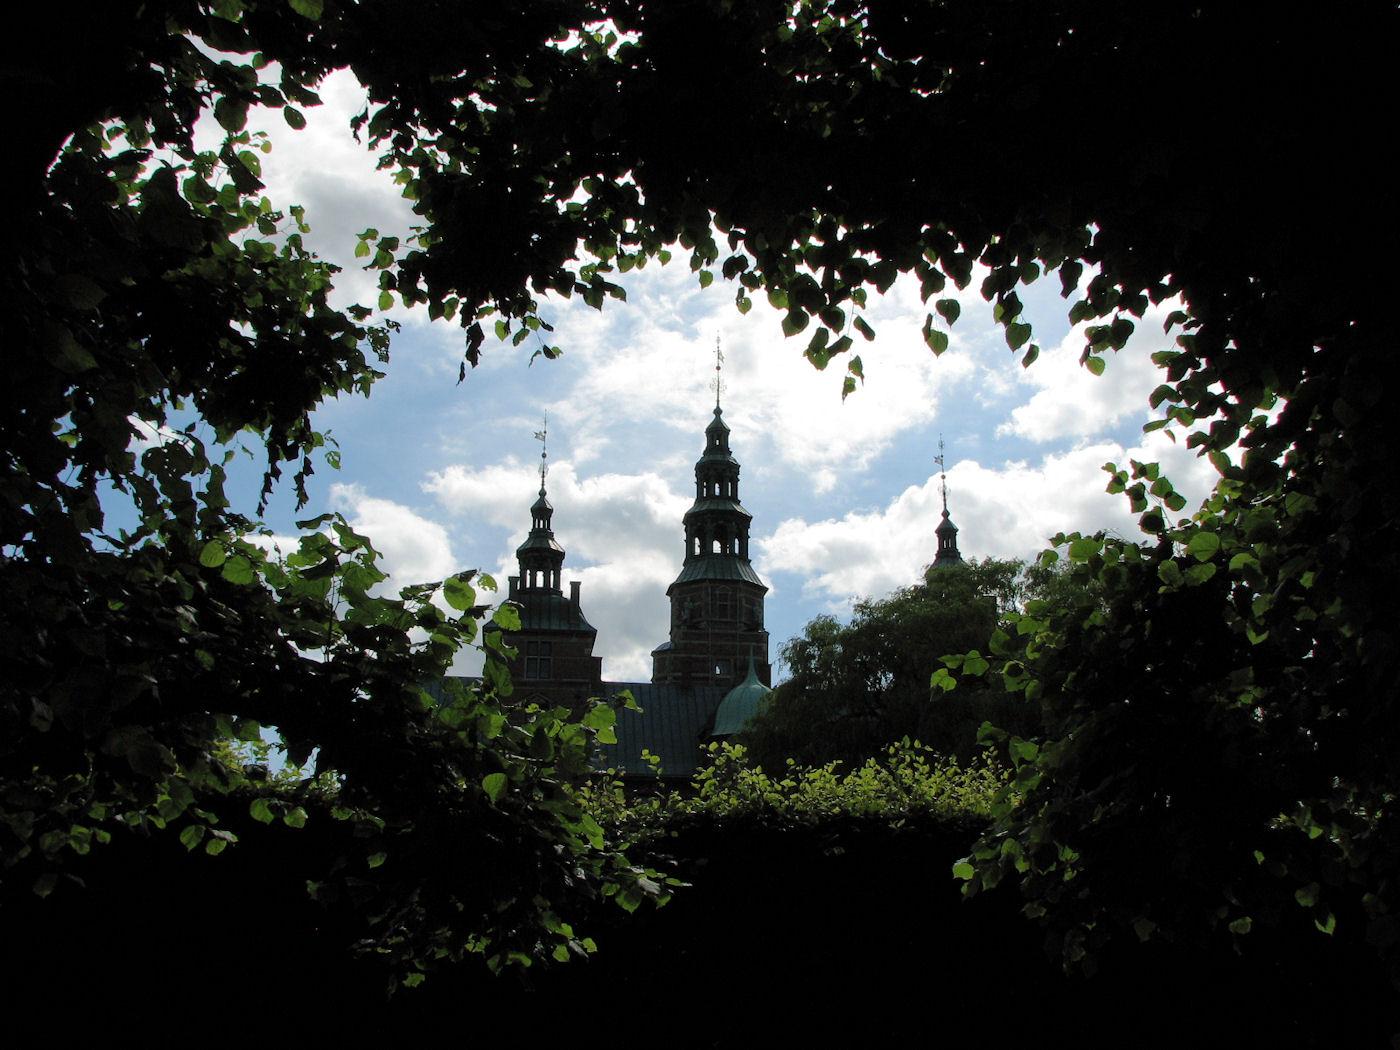 Tree-framed view of Rosenborg Castle